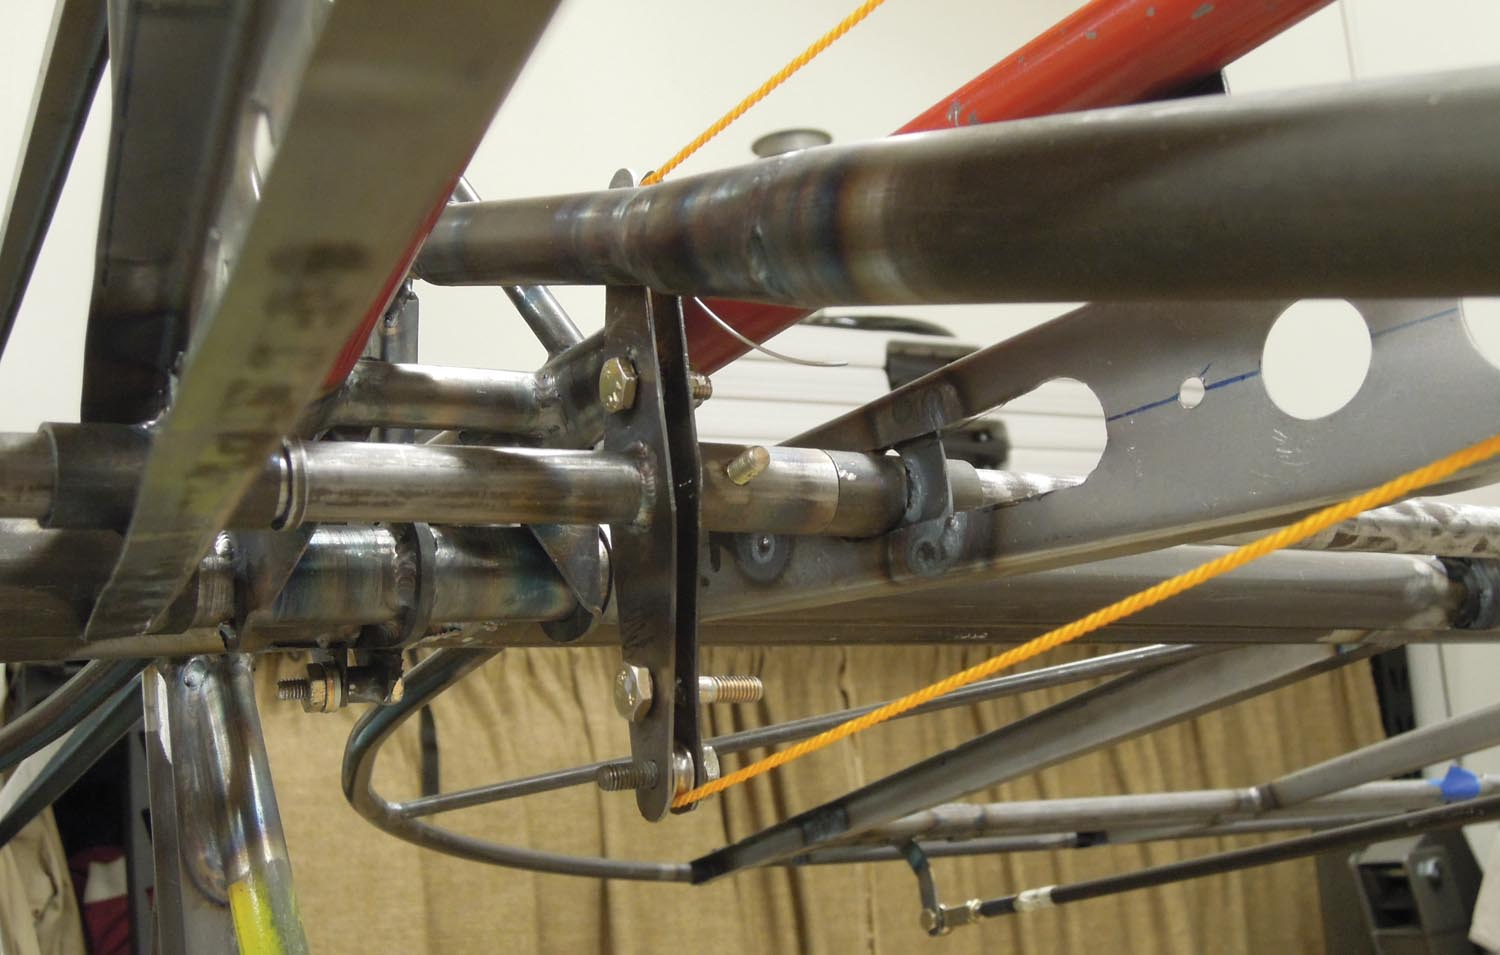 The trim tab bellcrank and elevator pushrod barely miss each other as they move through their necessary arcs.